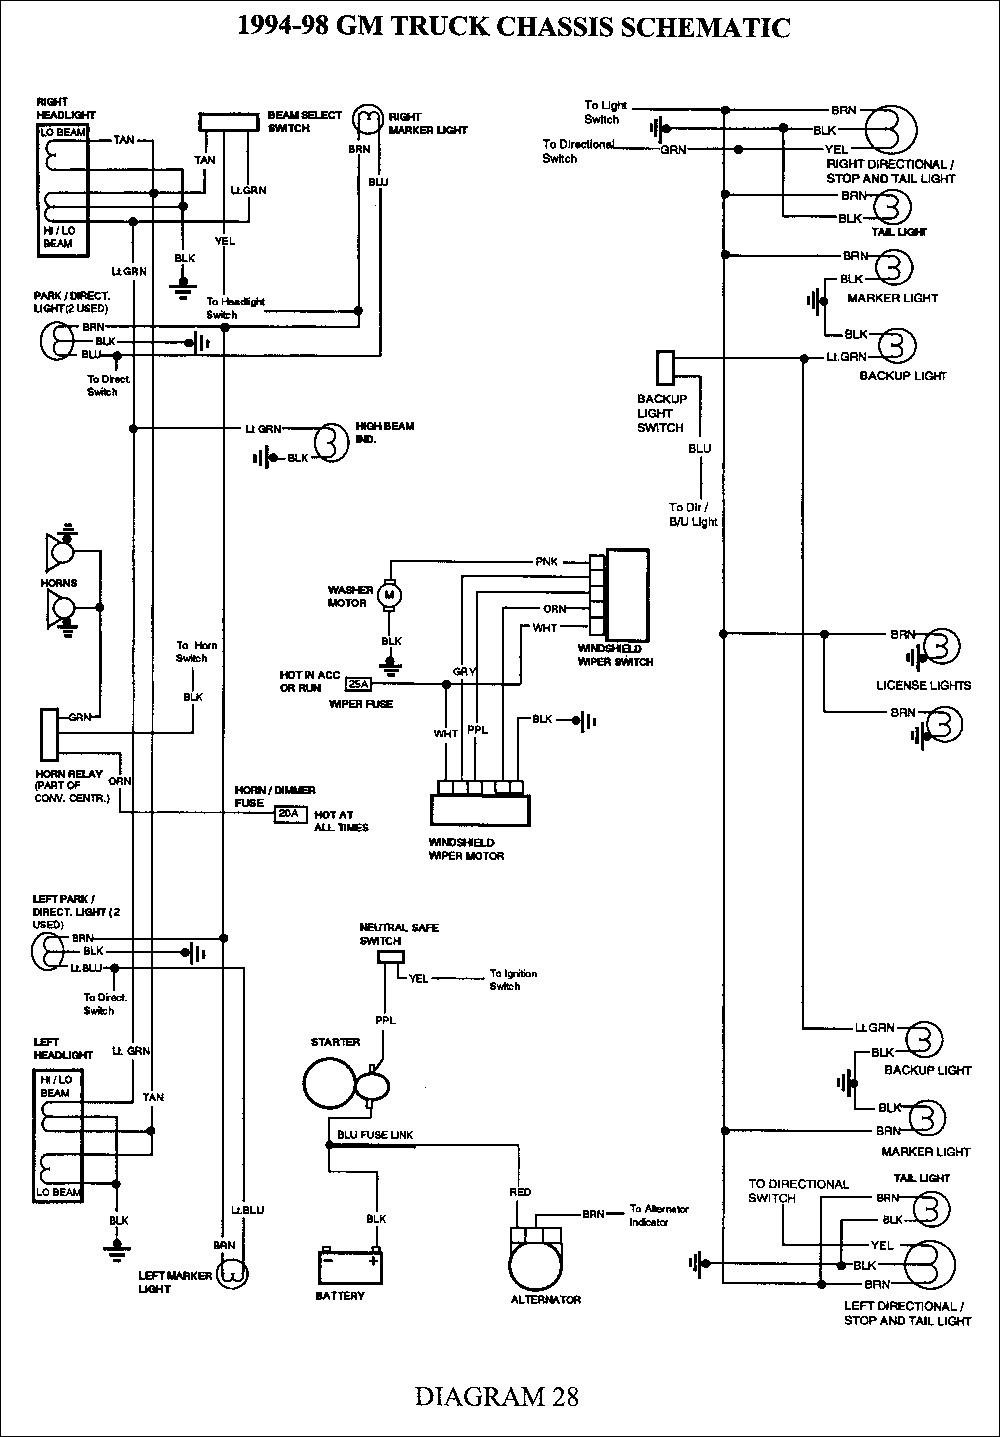 Chevy 350 Truck Engine Diagram Get Free Image About Wiring Diagram ...